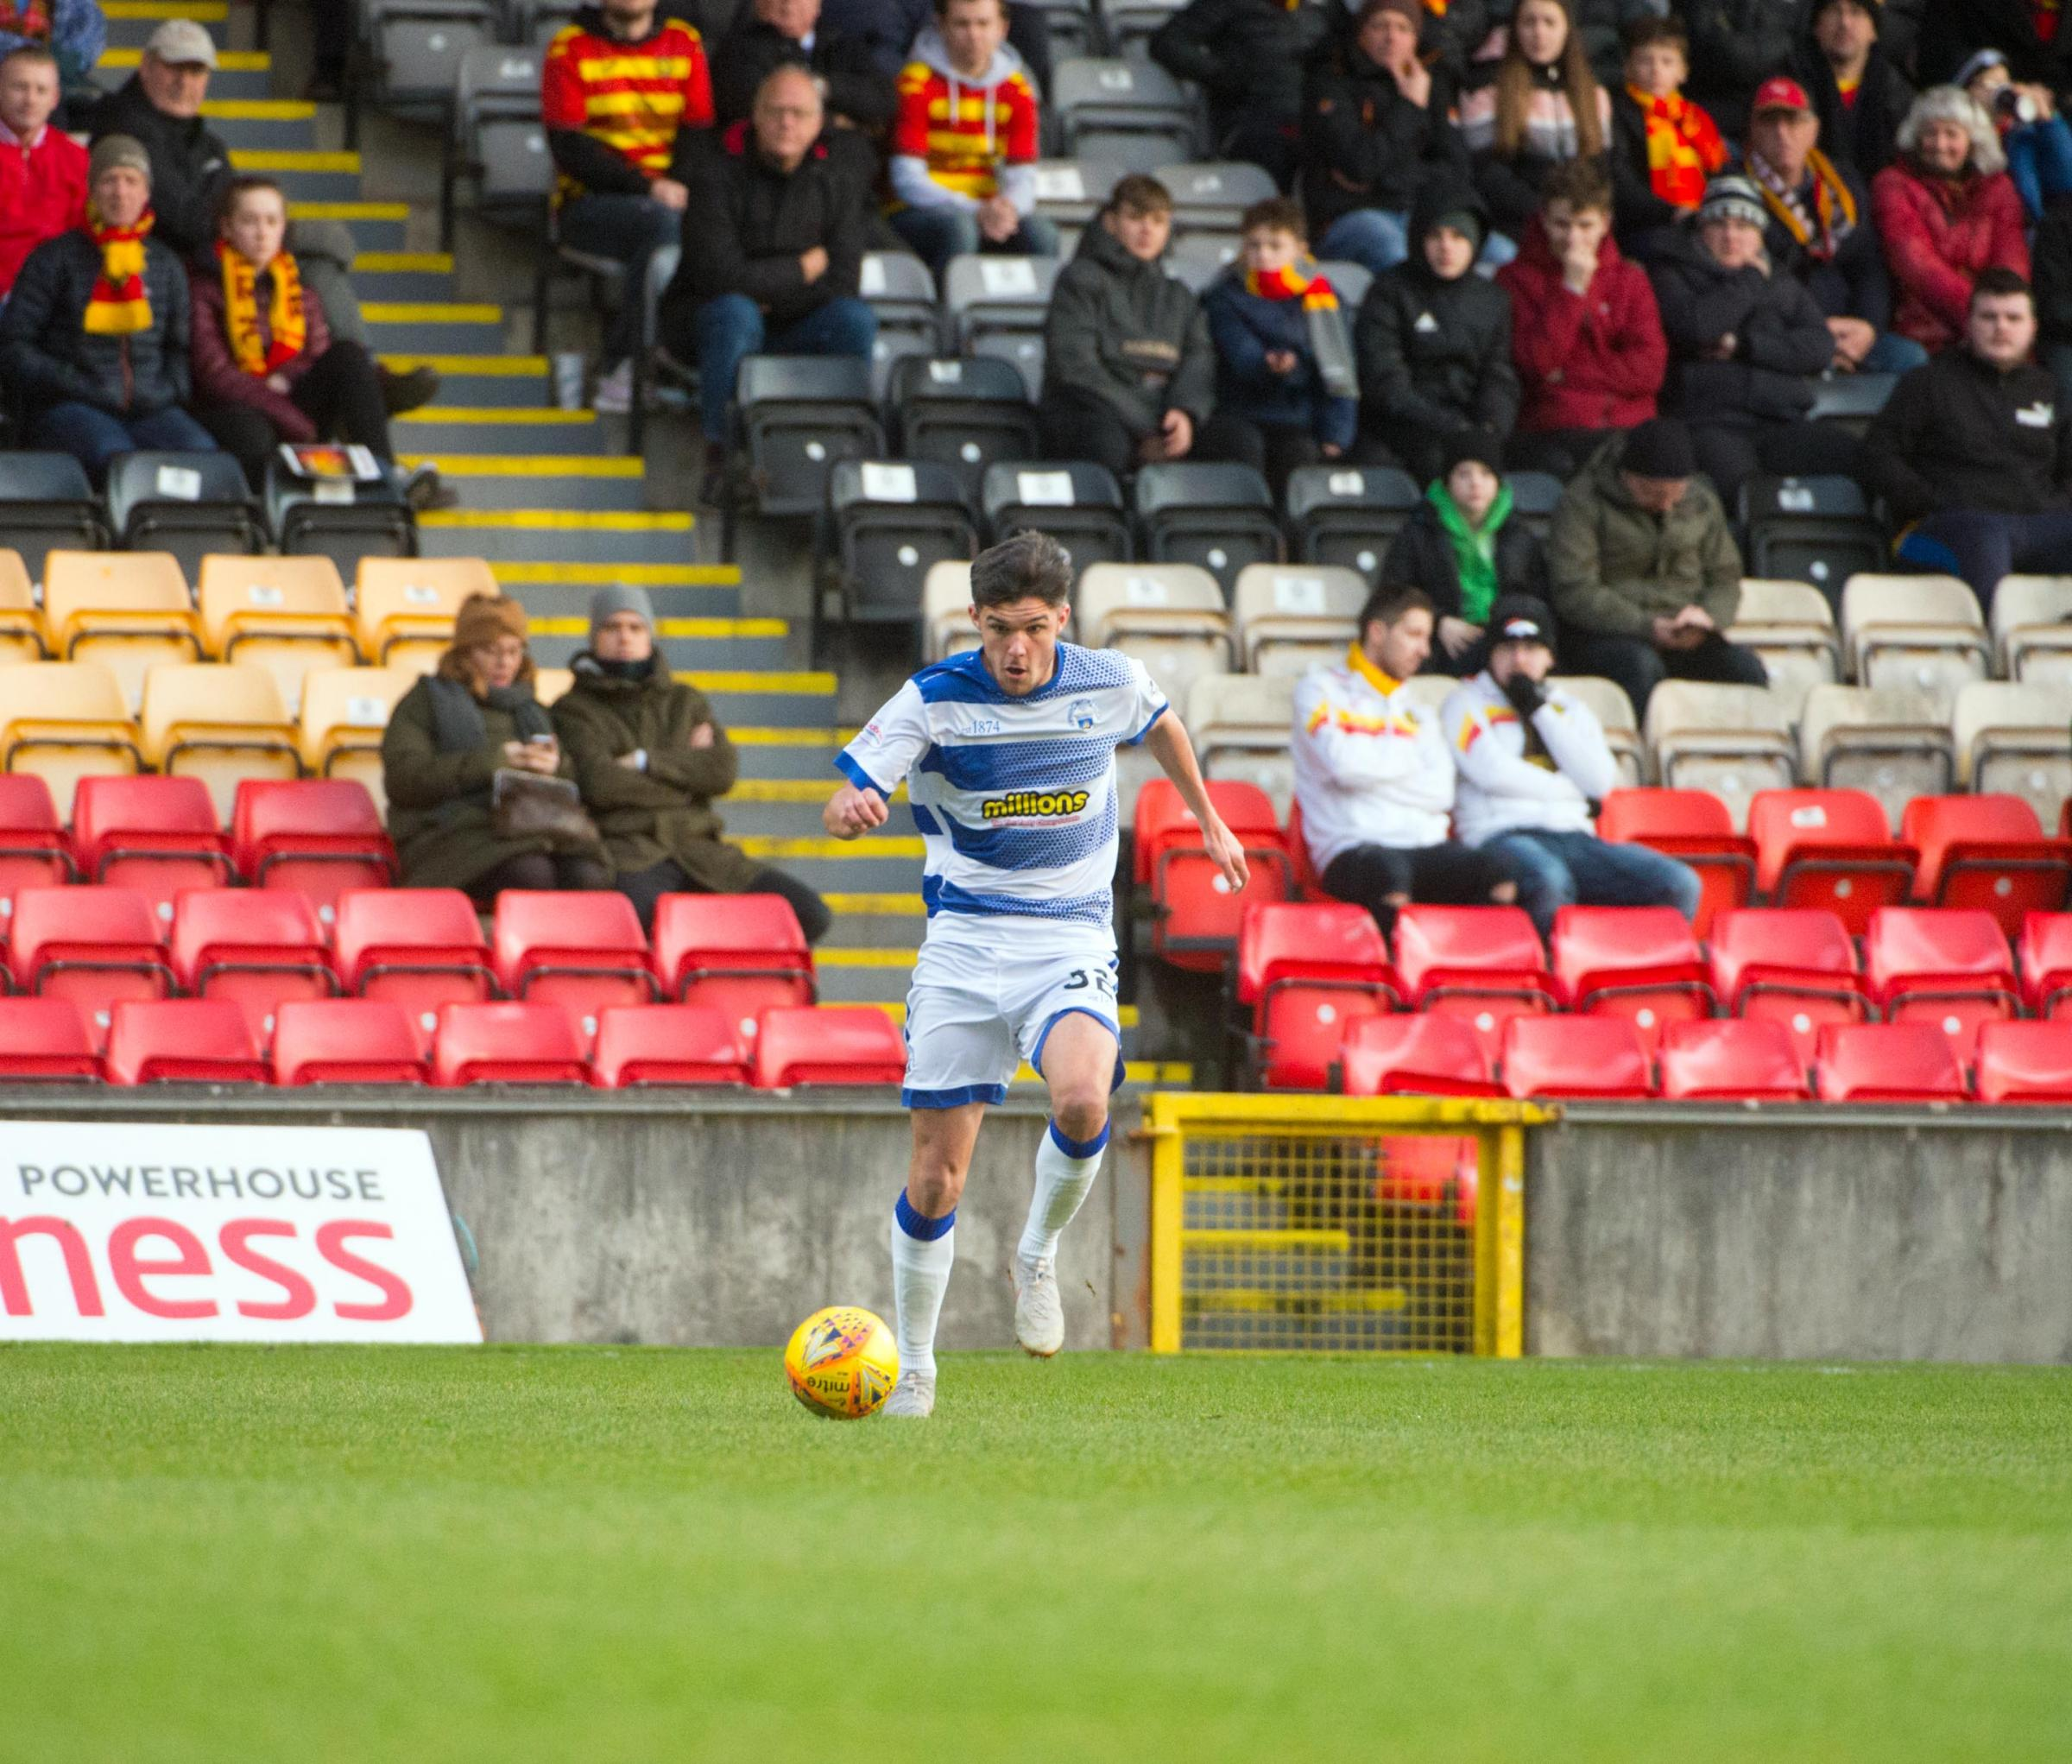 Lyon: 'I want to stay at Morton for as long as possible'